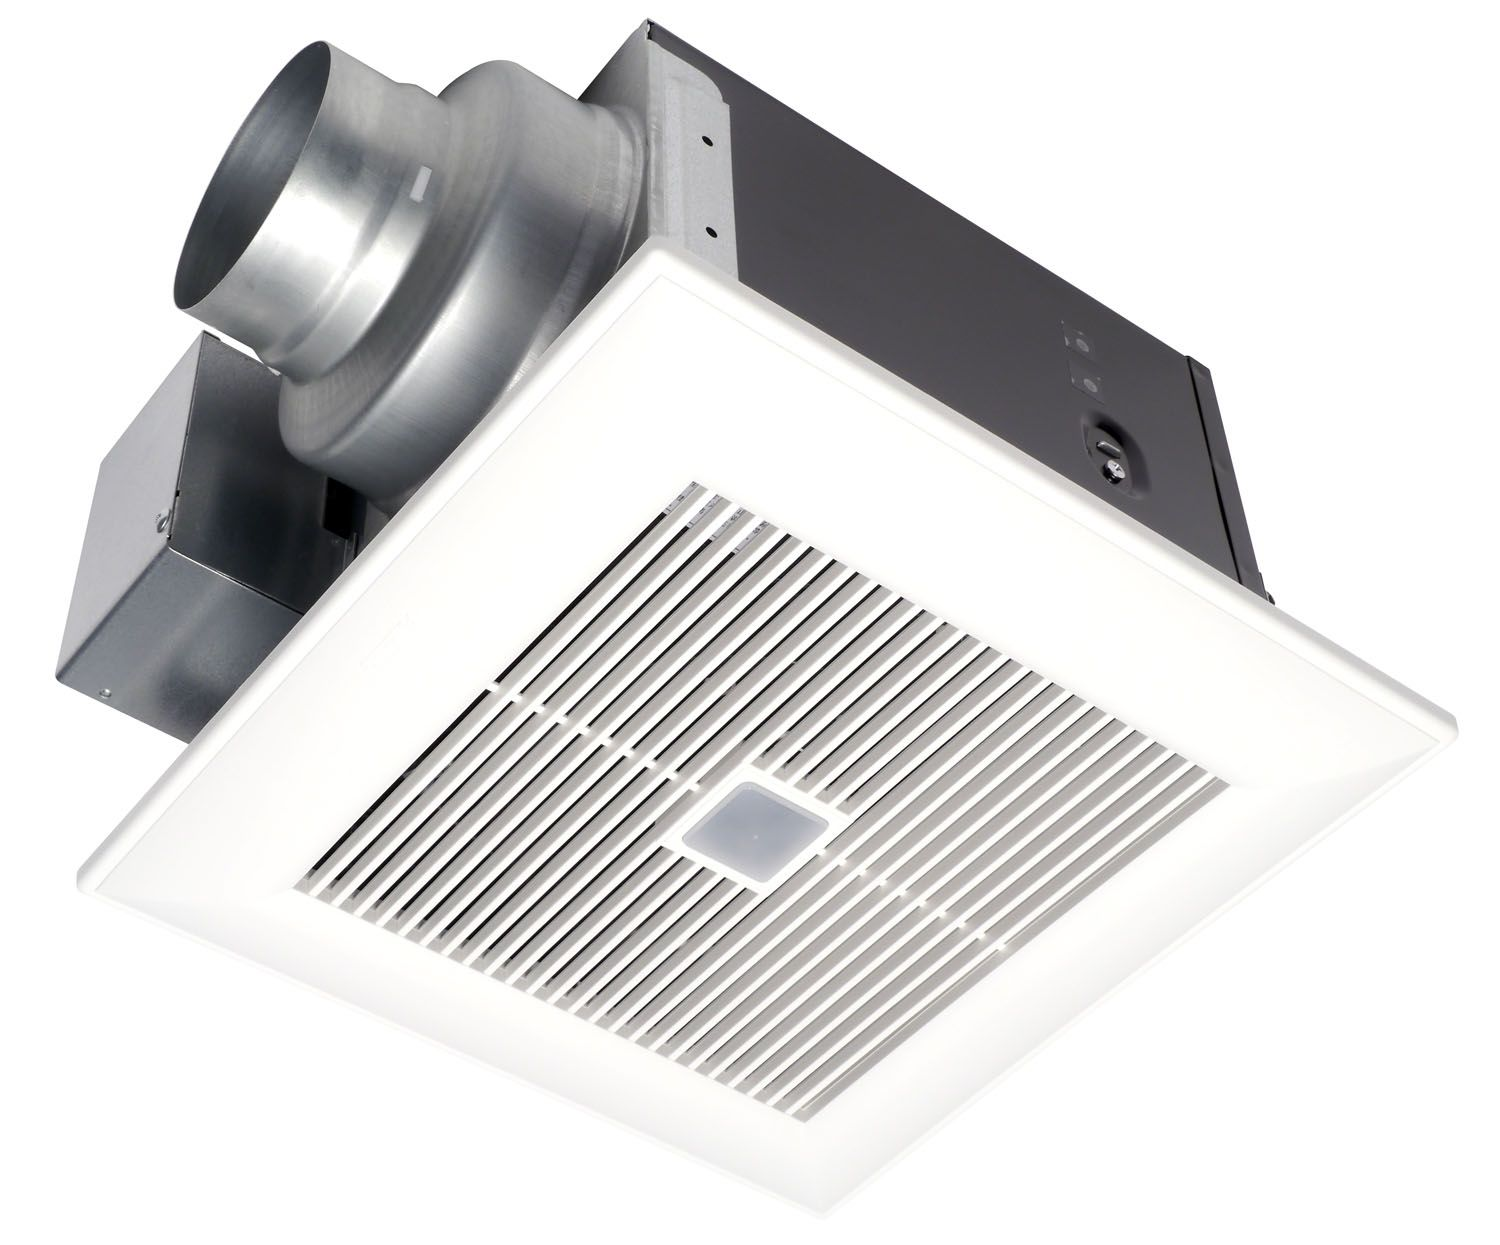 Ceiling Mounted Exhaust Fans For Bathroom   http://urresults.us ...